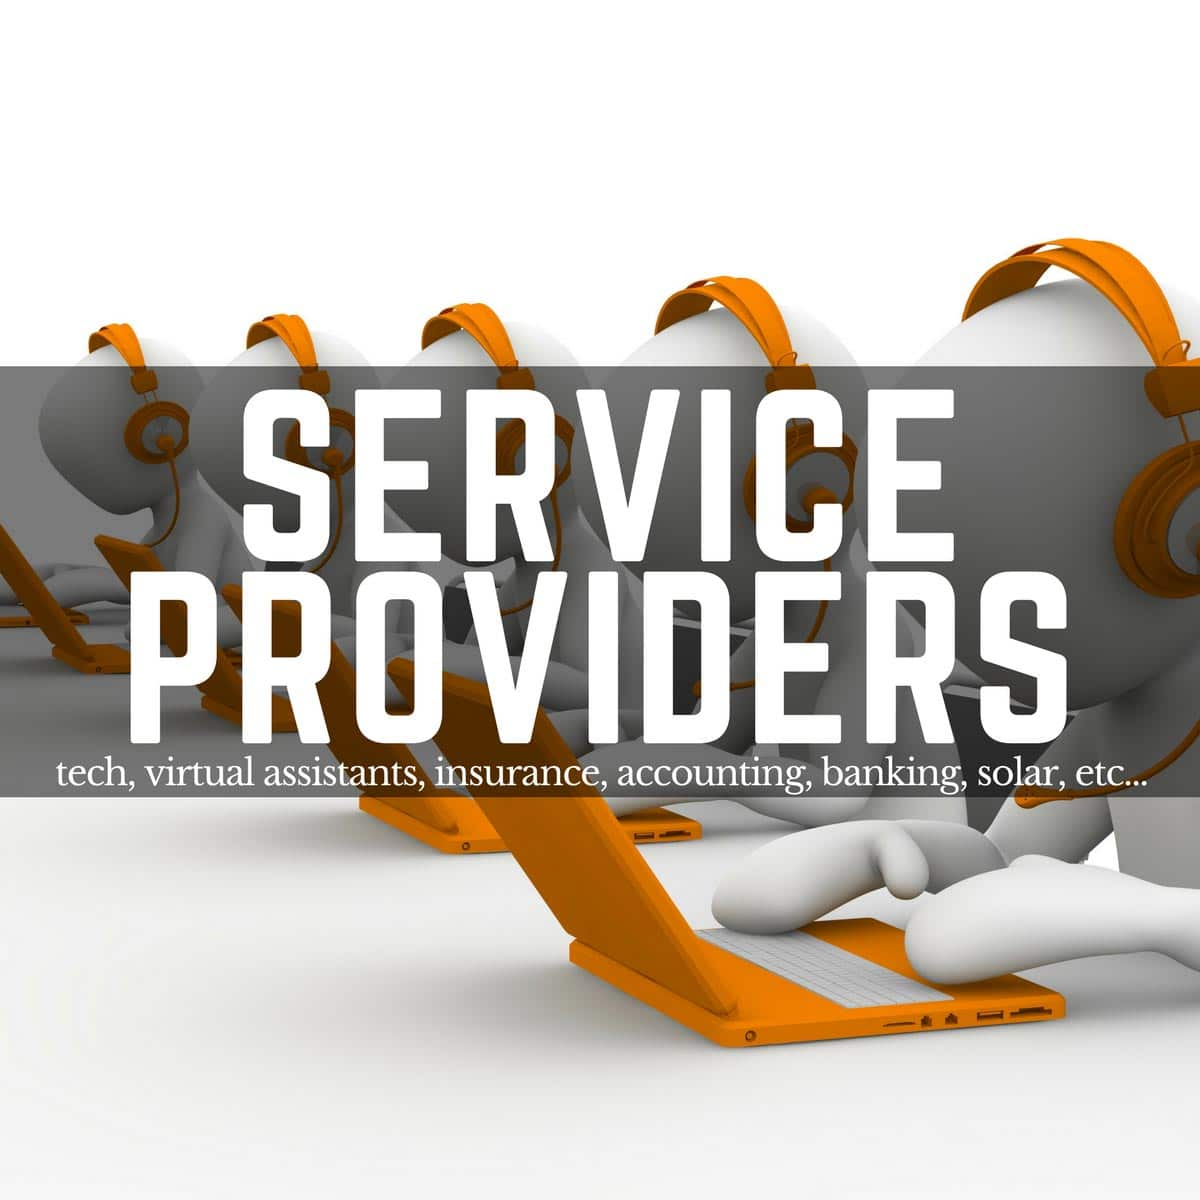 made in usa service providers, american made service providers, made in usa accounting, made in usa banking, made in usa marketing, made in usa tech, made in usa virtual assistants, made in usa solar, american made solar, made in usa products list, made in america products list, american made products list